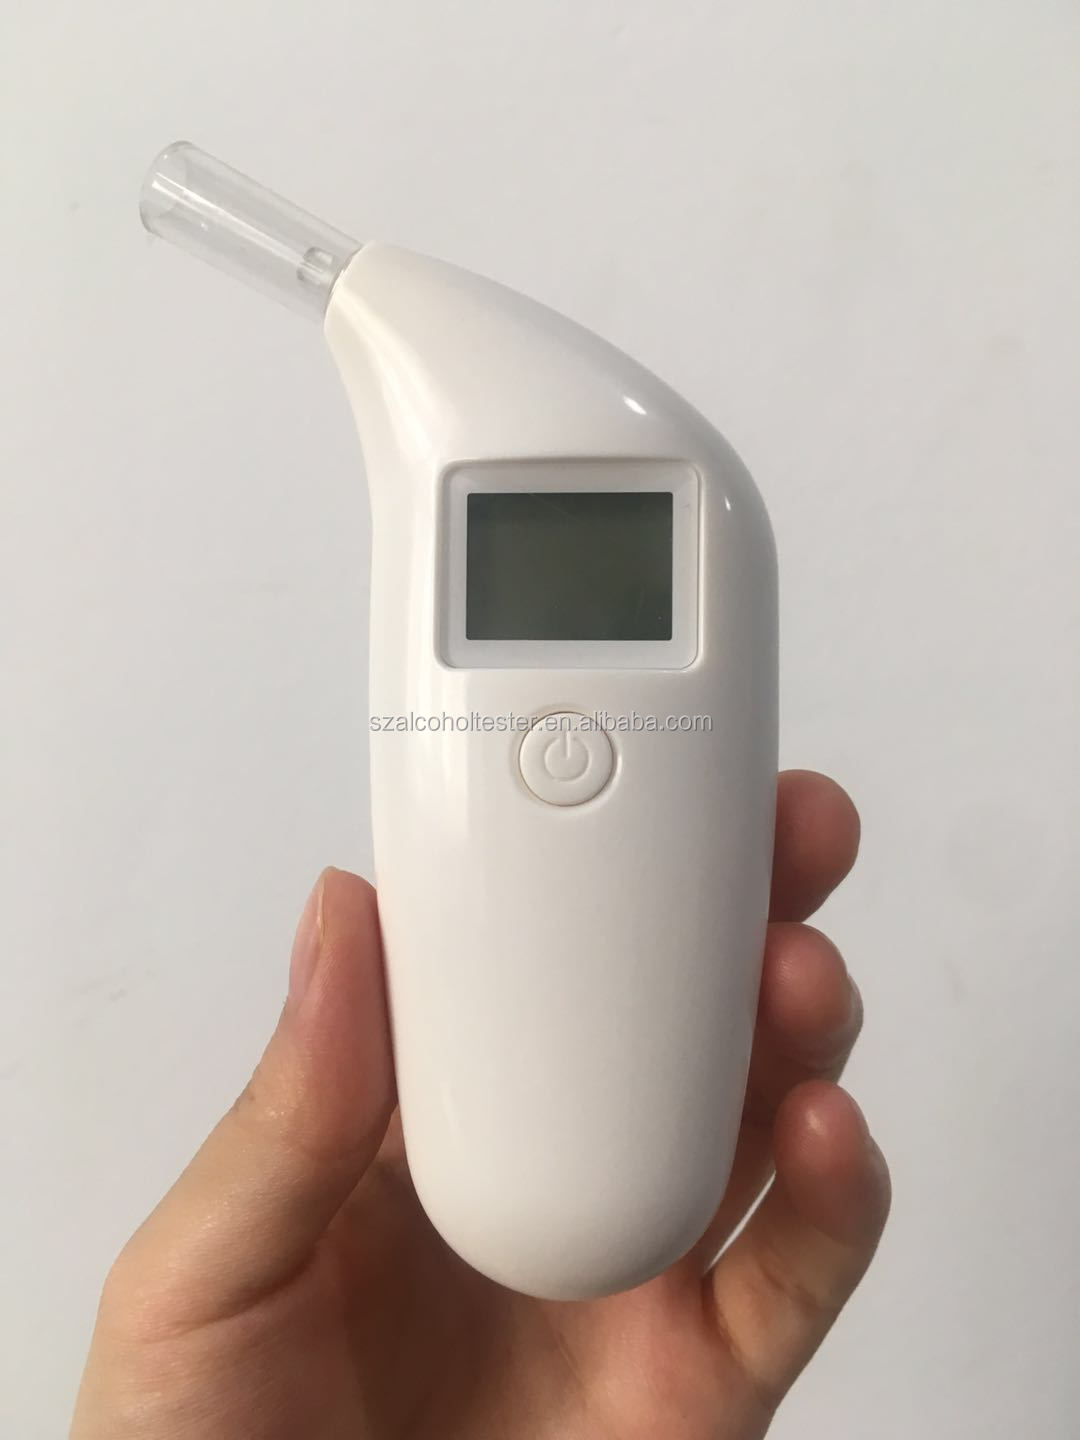 Breath Keton Analyzer Ketones Breathalyzer Breath Ketone tester Ketone tester meter